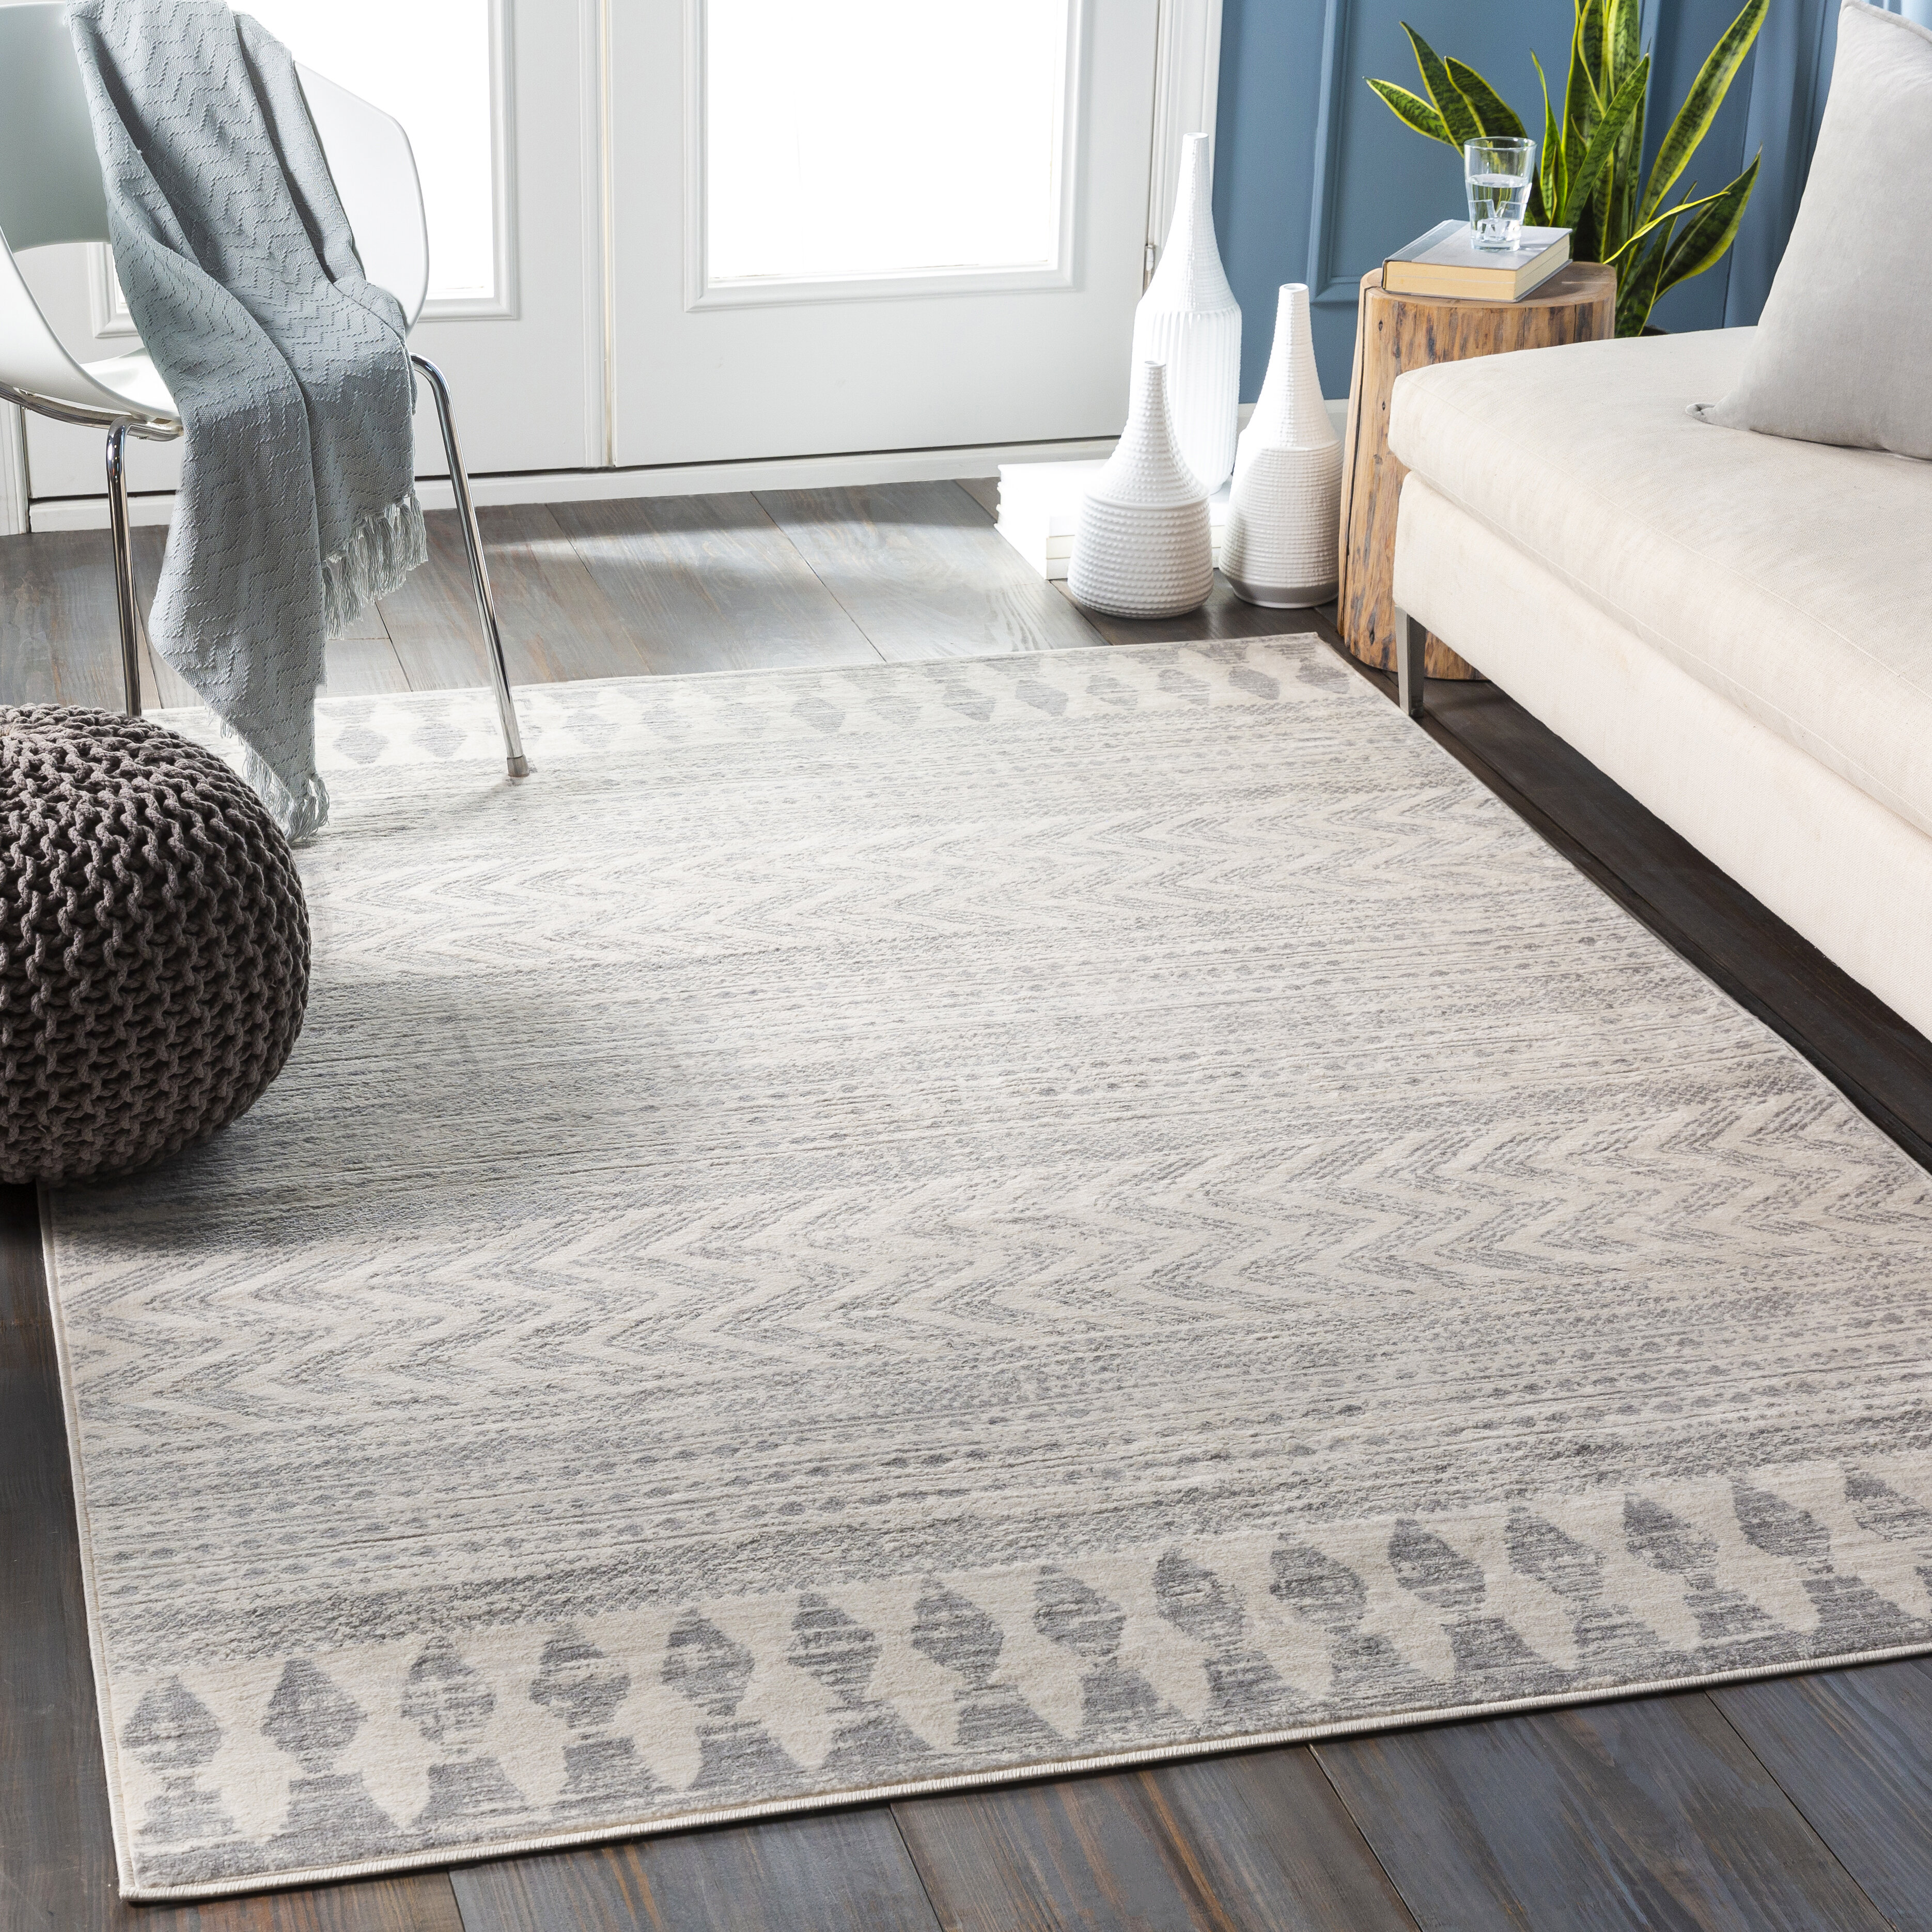 Wayfair 7 X 9 Area Rugs You Ll Love In 2021